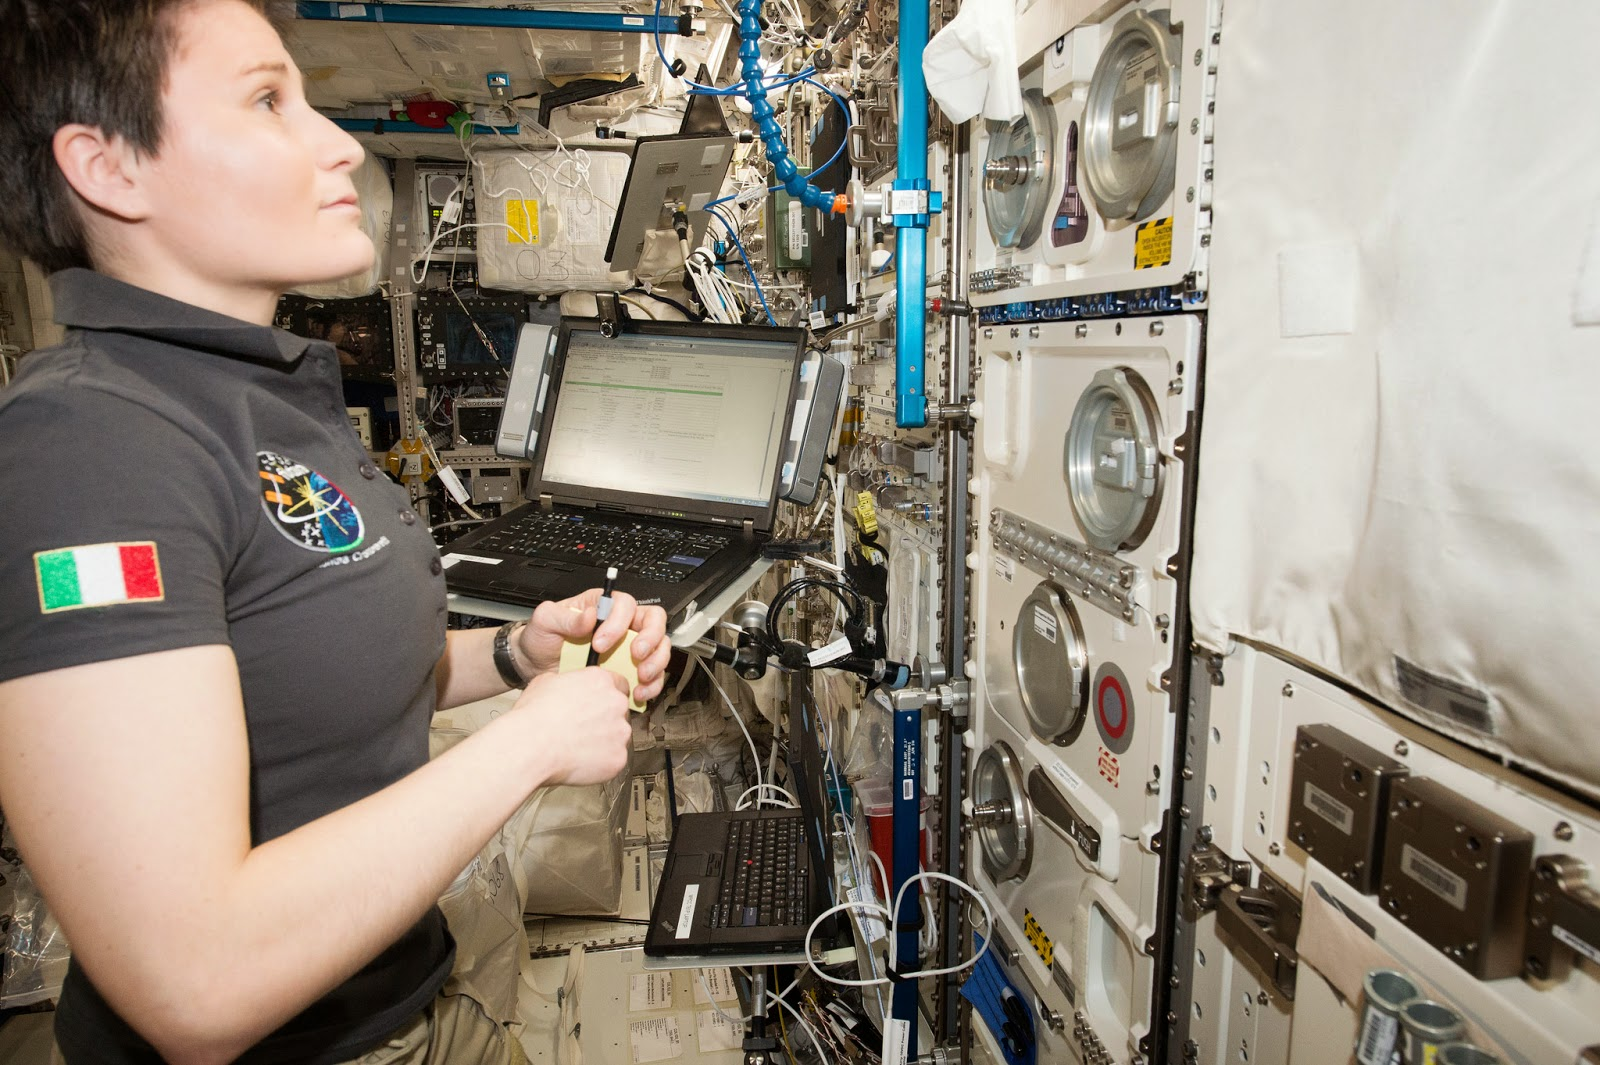 Samantha Cristoforetti, first Italian woman in space, Expedition 43 flight engineer aboard the International Space Station, is seen working on a science experiment that includes photographic documentation of Cellular Responses to Single and Combined Space Flight Conditions. Credit: NASA